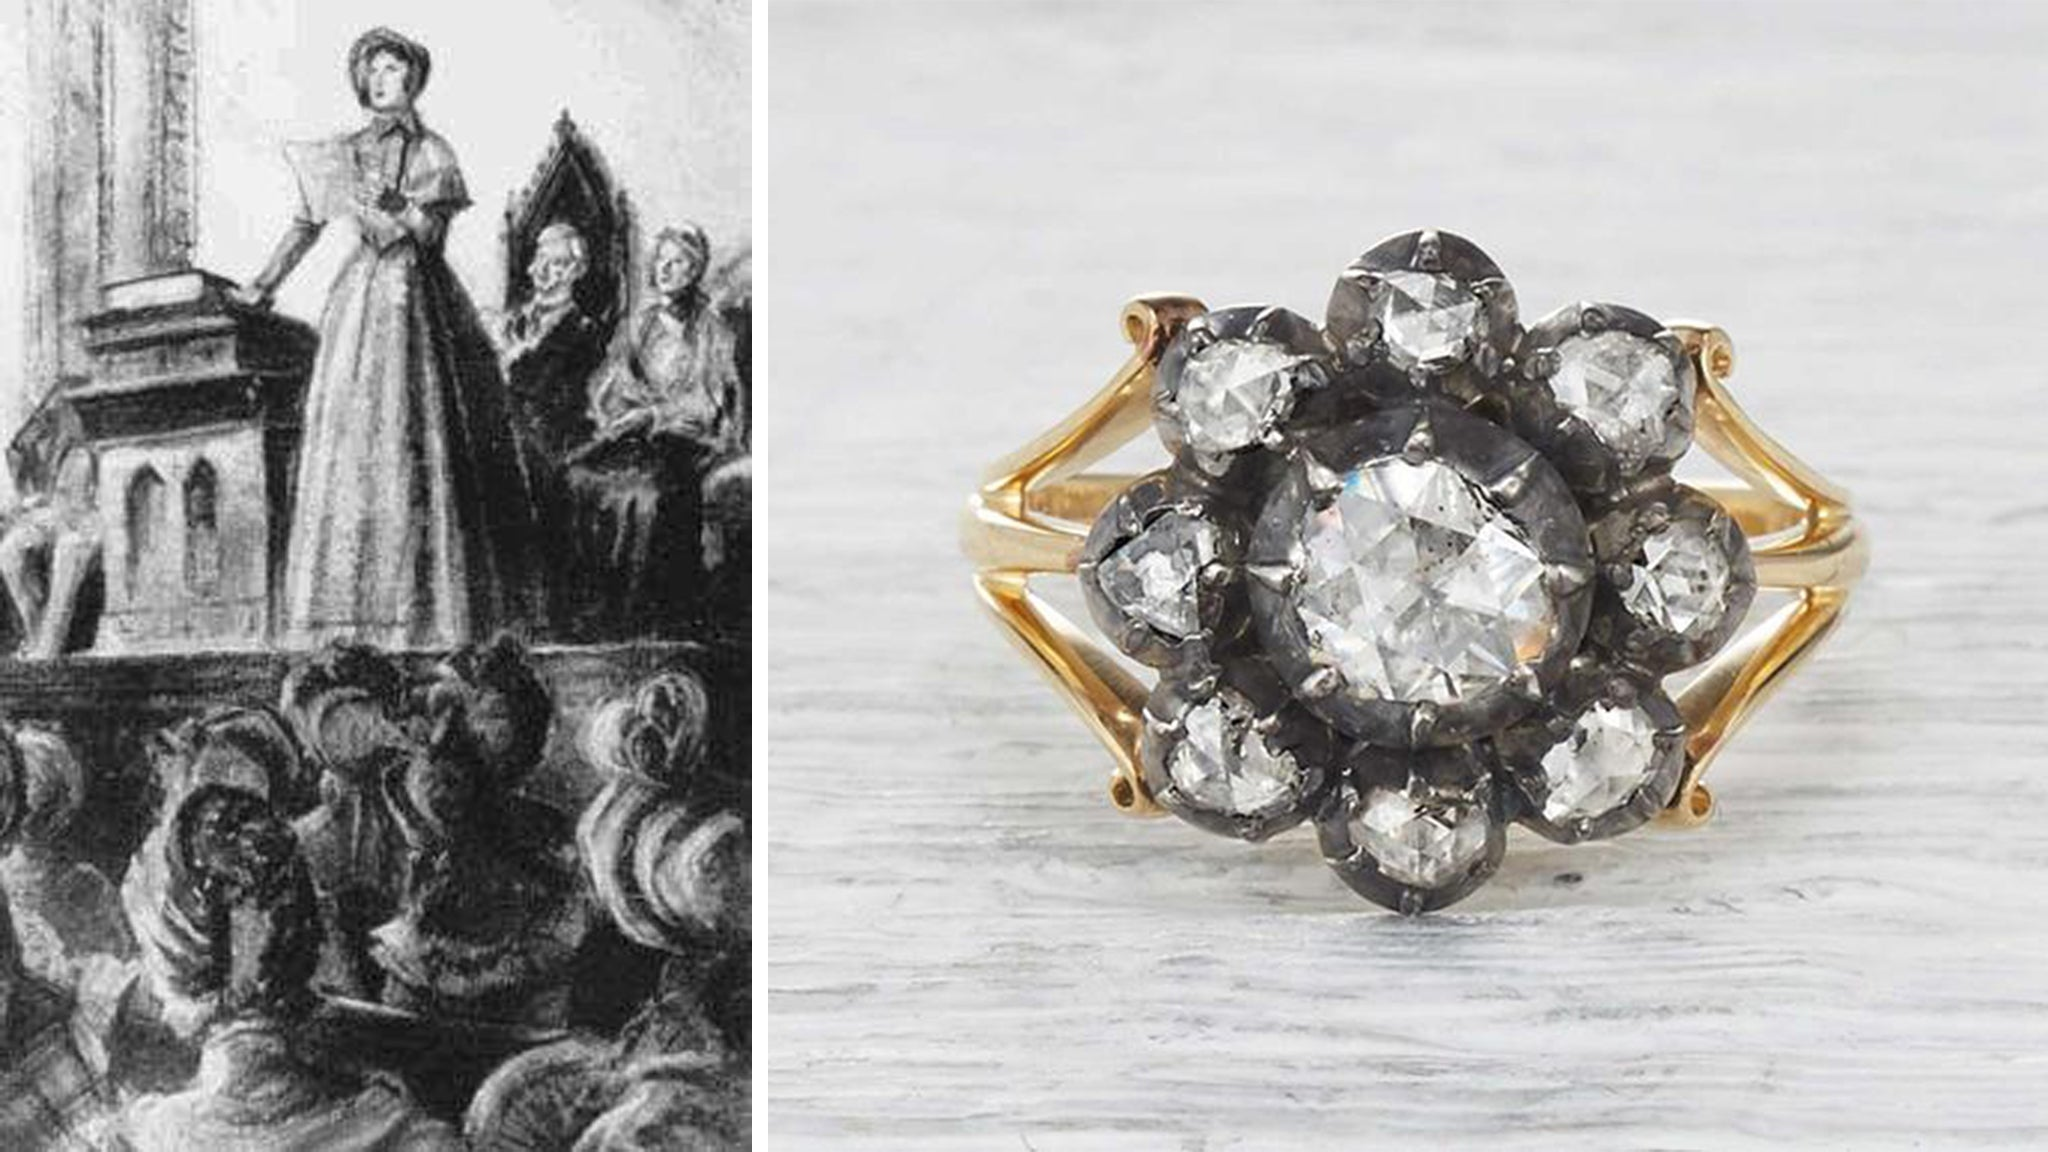 Georgian Ring Worn by Woman in the 1840s